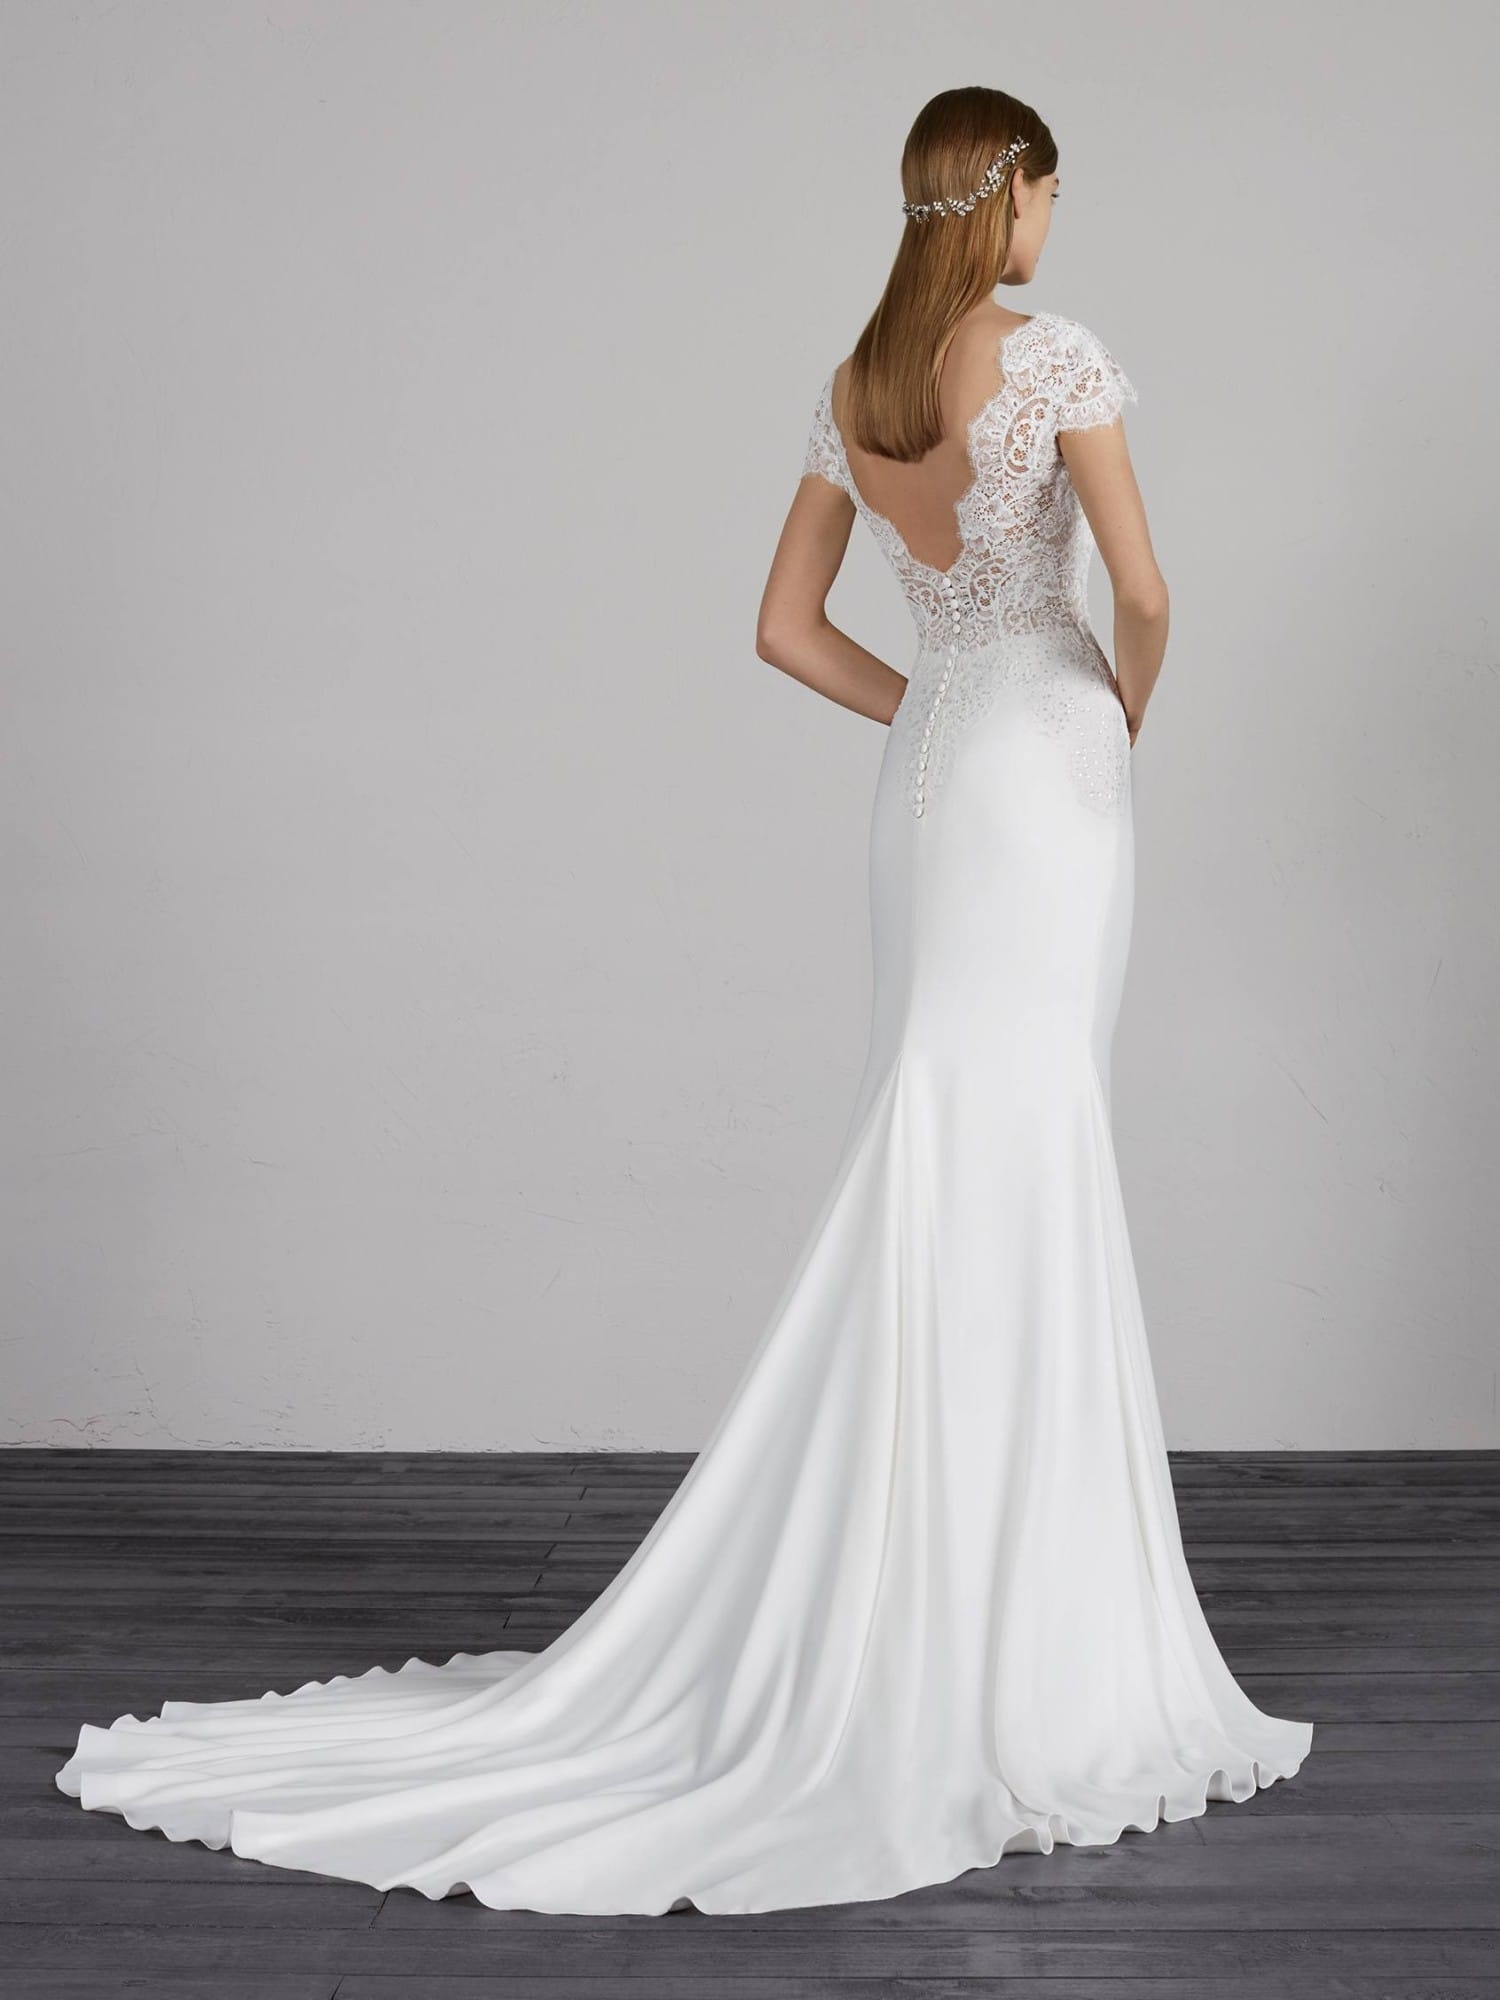 Pronovias Milady Gown Sell My Wedding Dress Online